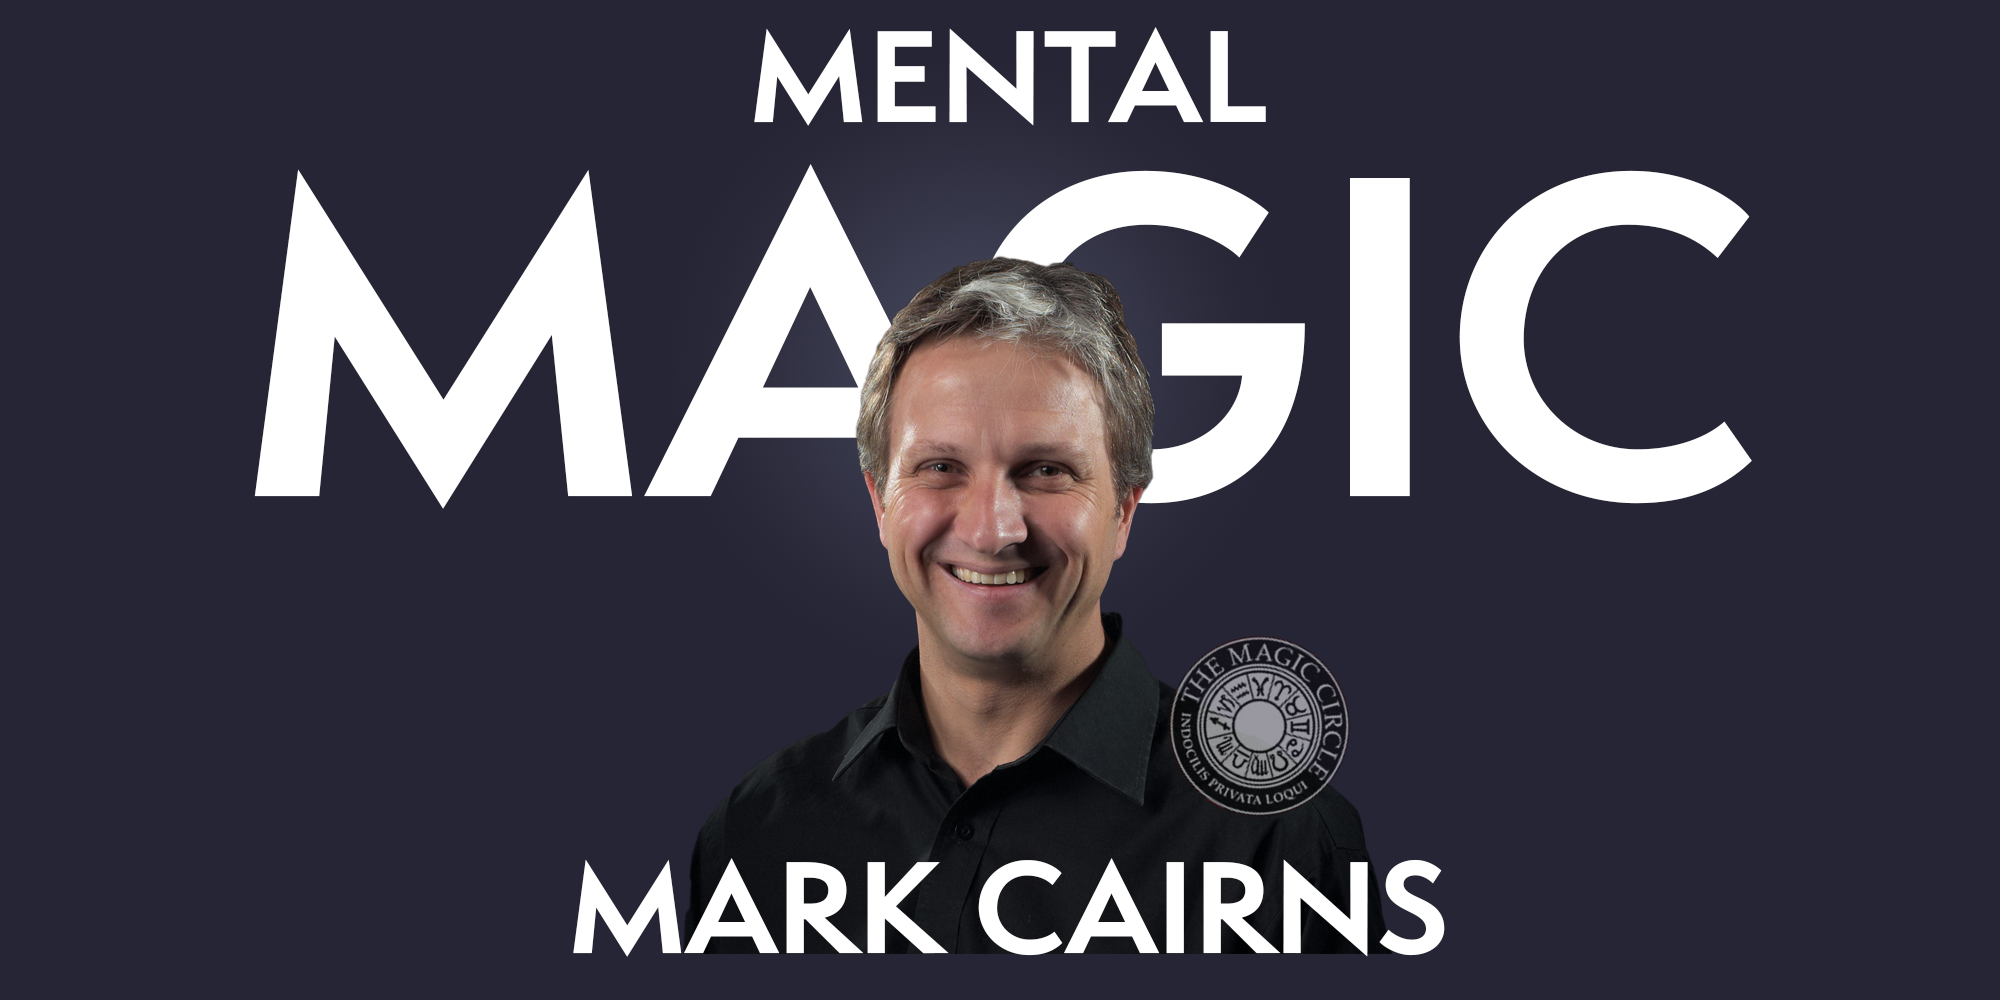 Mental Magic - Mark cairns image